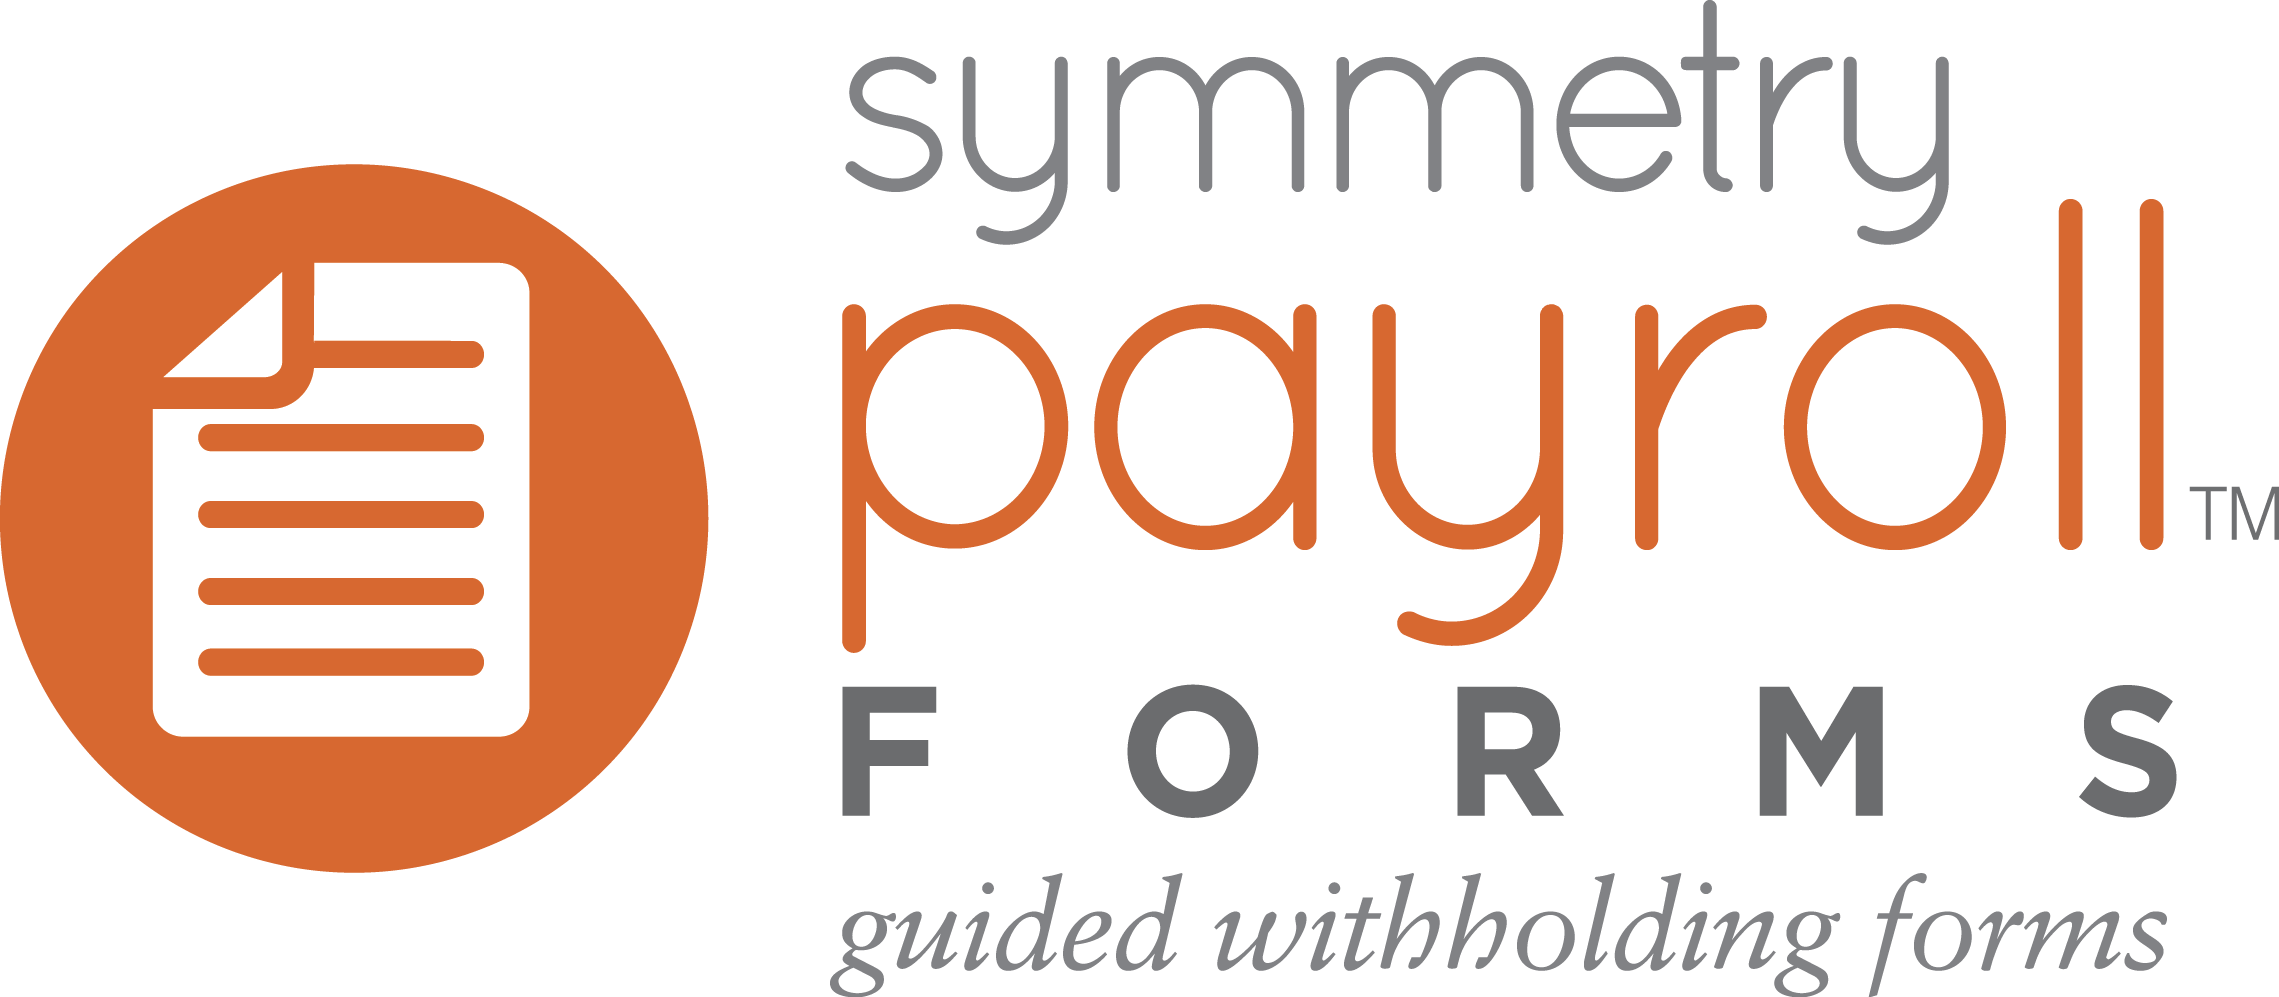 Symmetry Software Releases Paycheckcity App 2 0 For Android And Apple Ios Devices